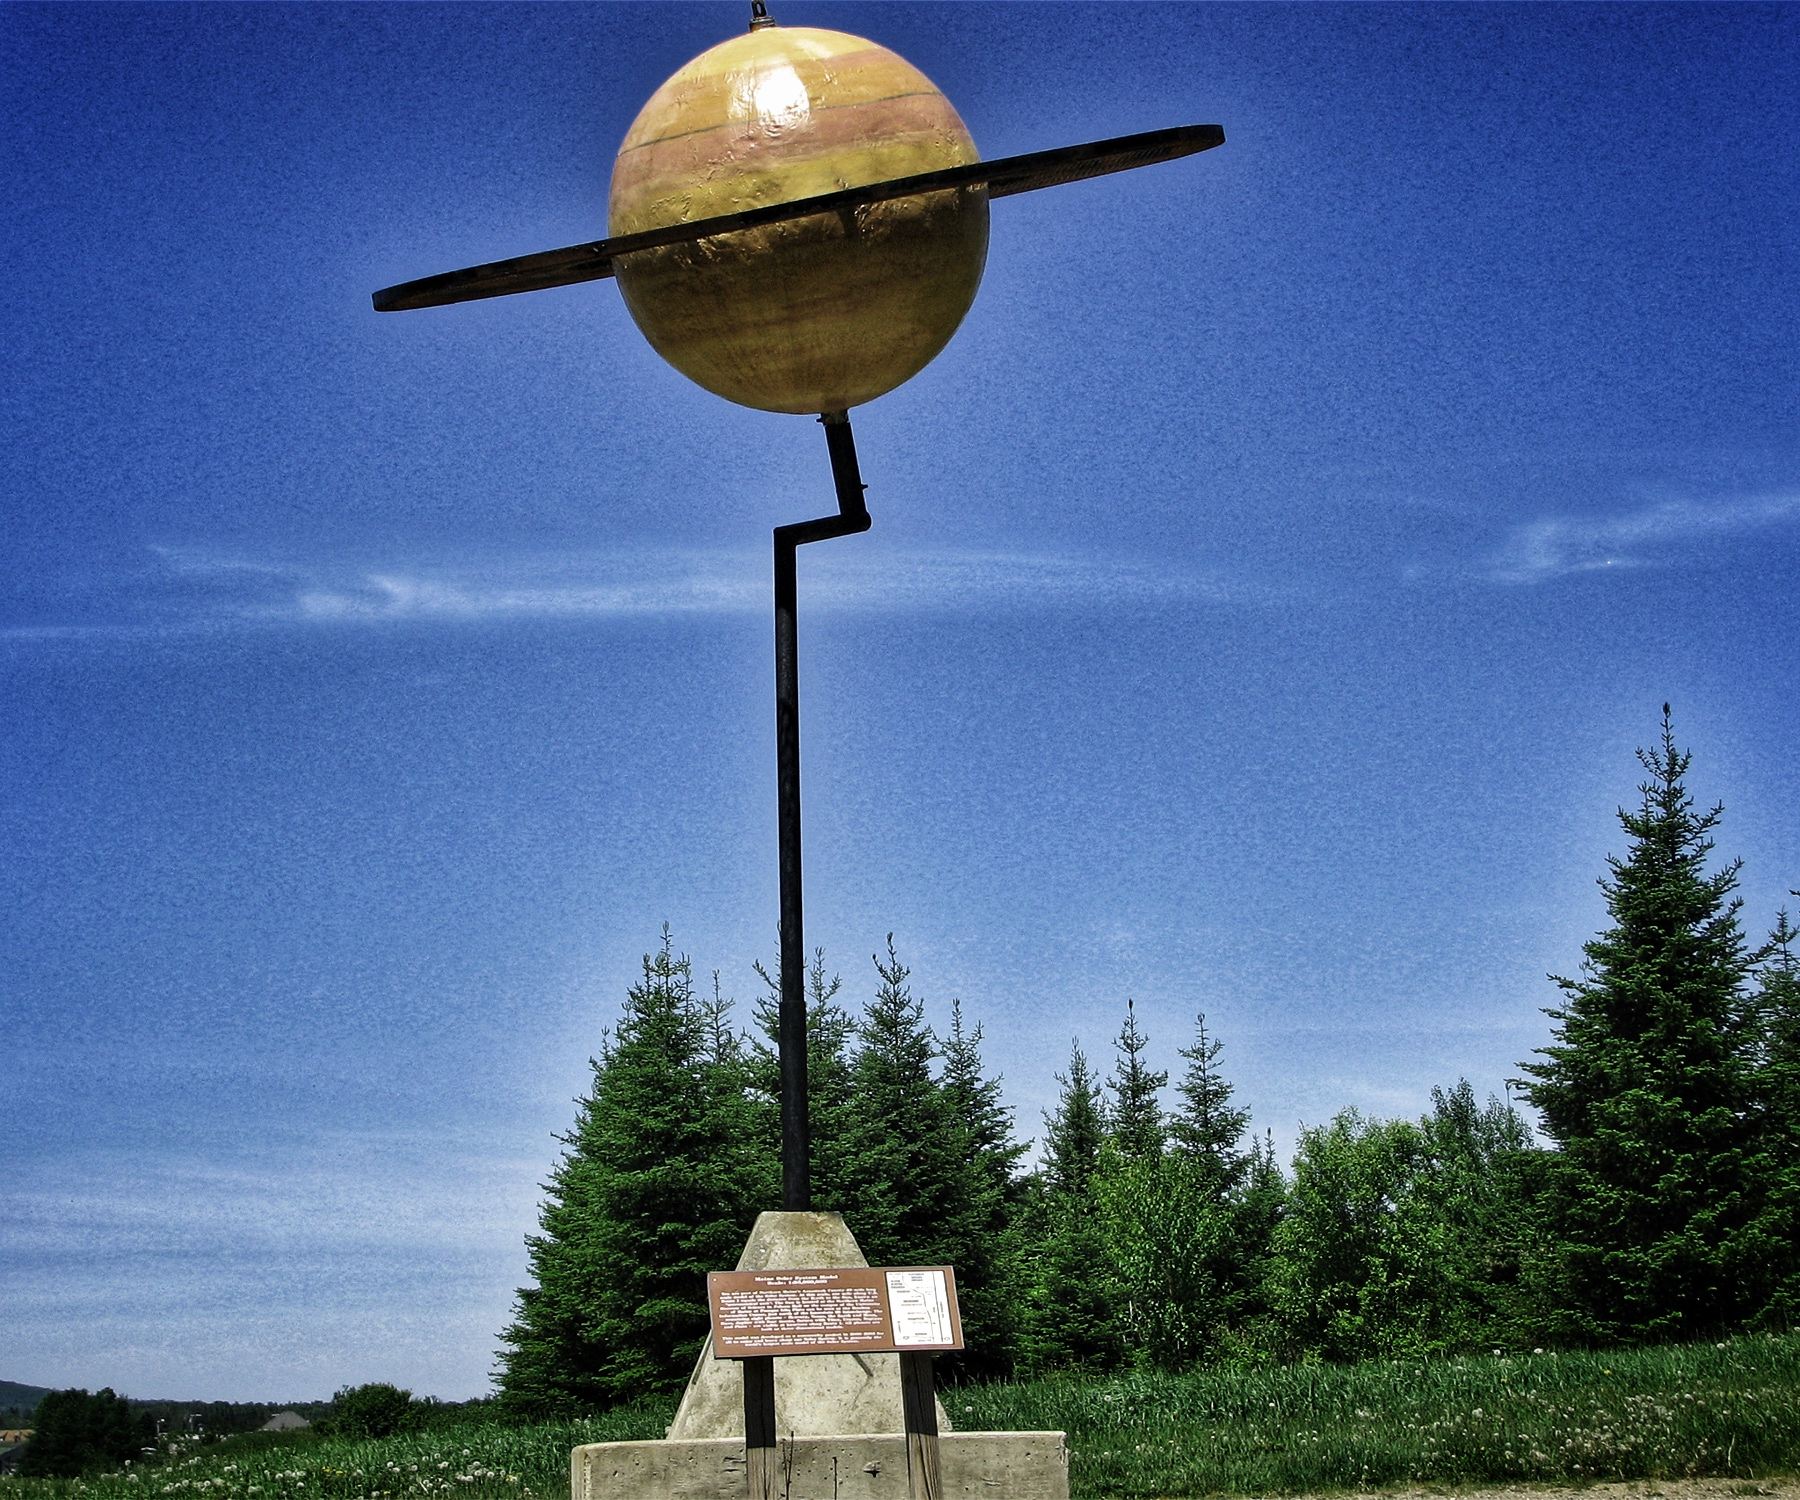 The scale model of Saturn along Route 1 in Maine.